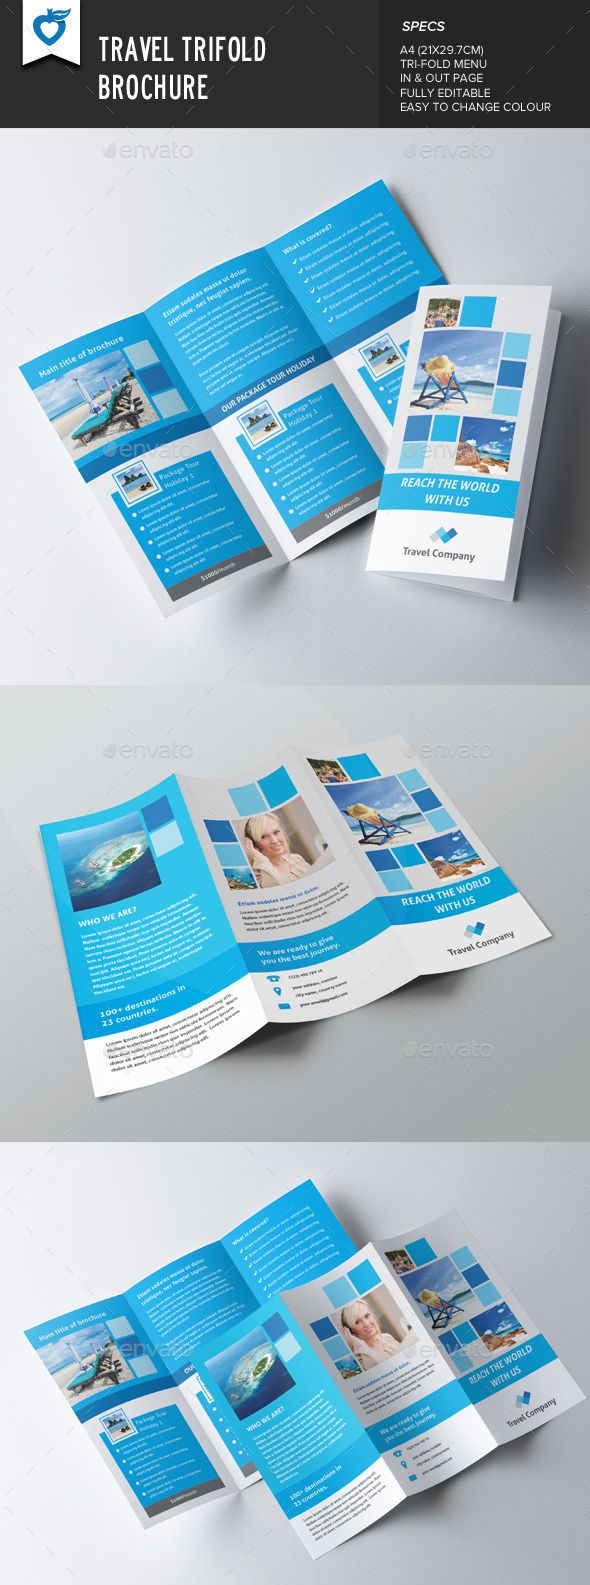 Travel Trifold Brochure Brochures Brochure Template And Template